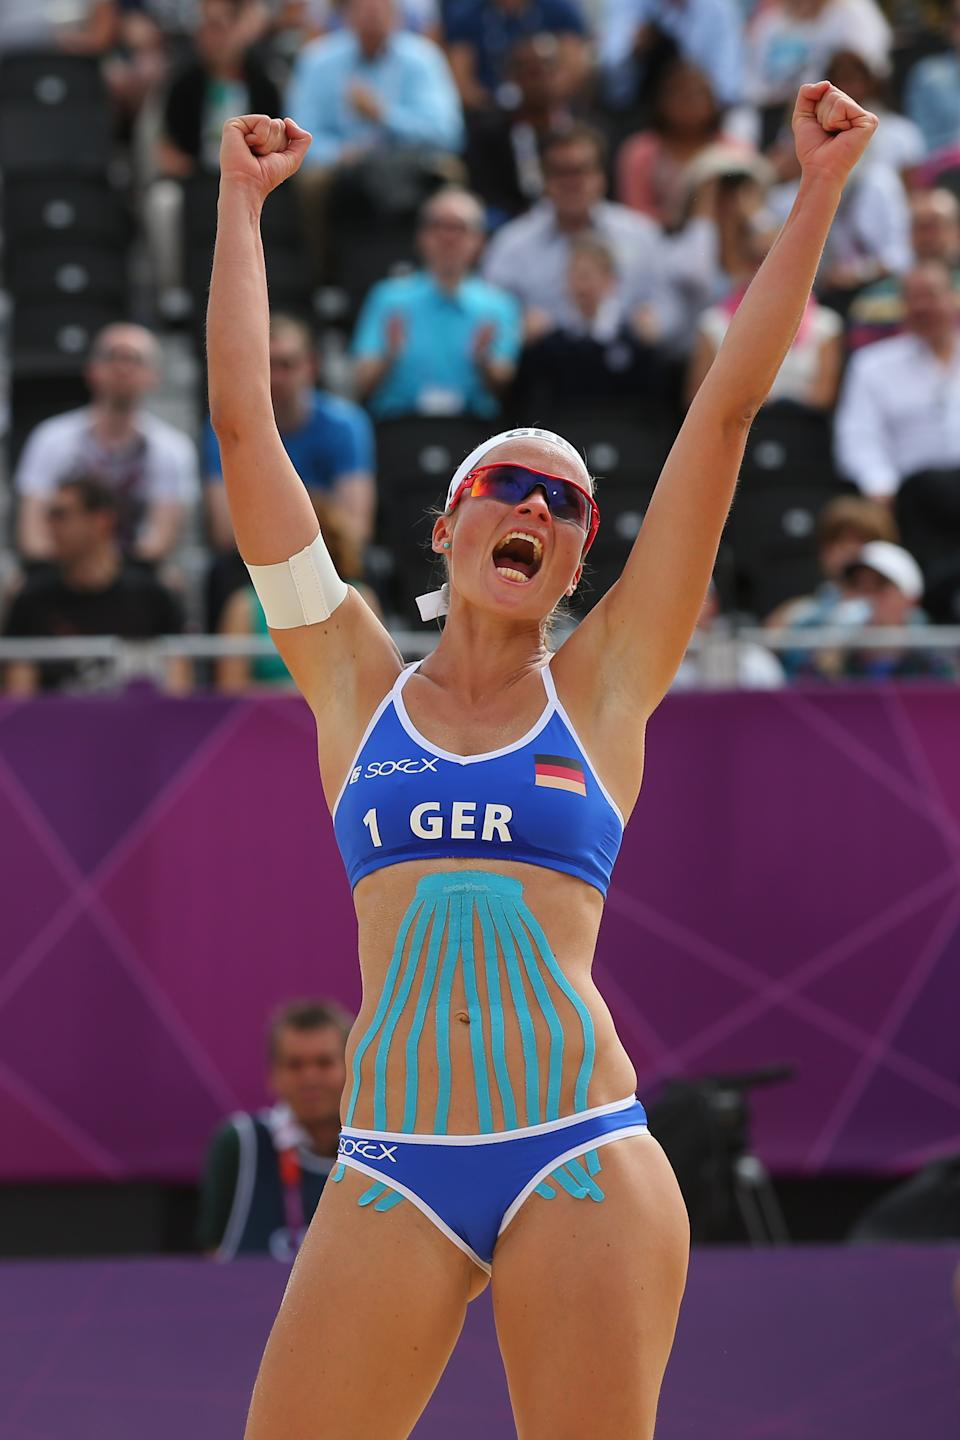 LONDON, ENGLAND - JULY 28: Katrin Holtwick of Germany celebrates during the Women's Beach Volleyball match between Germany and Czech Republic on Day 1 of the London 2012 Olympic Games at Horse Guards Parade on July 28, 2012 in London, England. (Photo by Alexander Hassenstein/Getty Images)